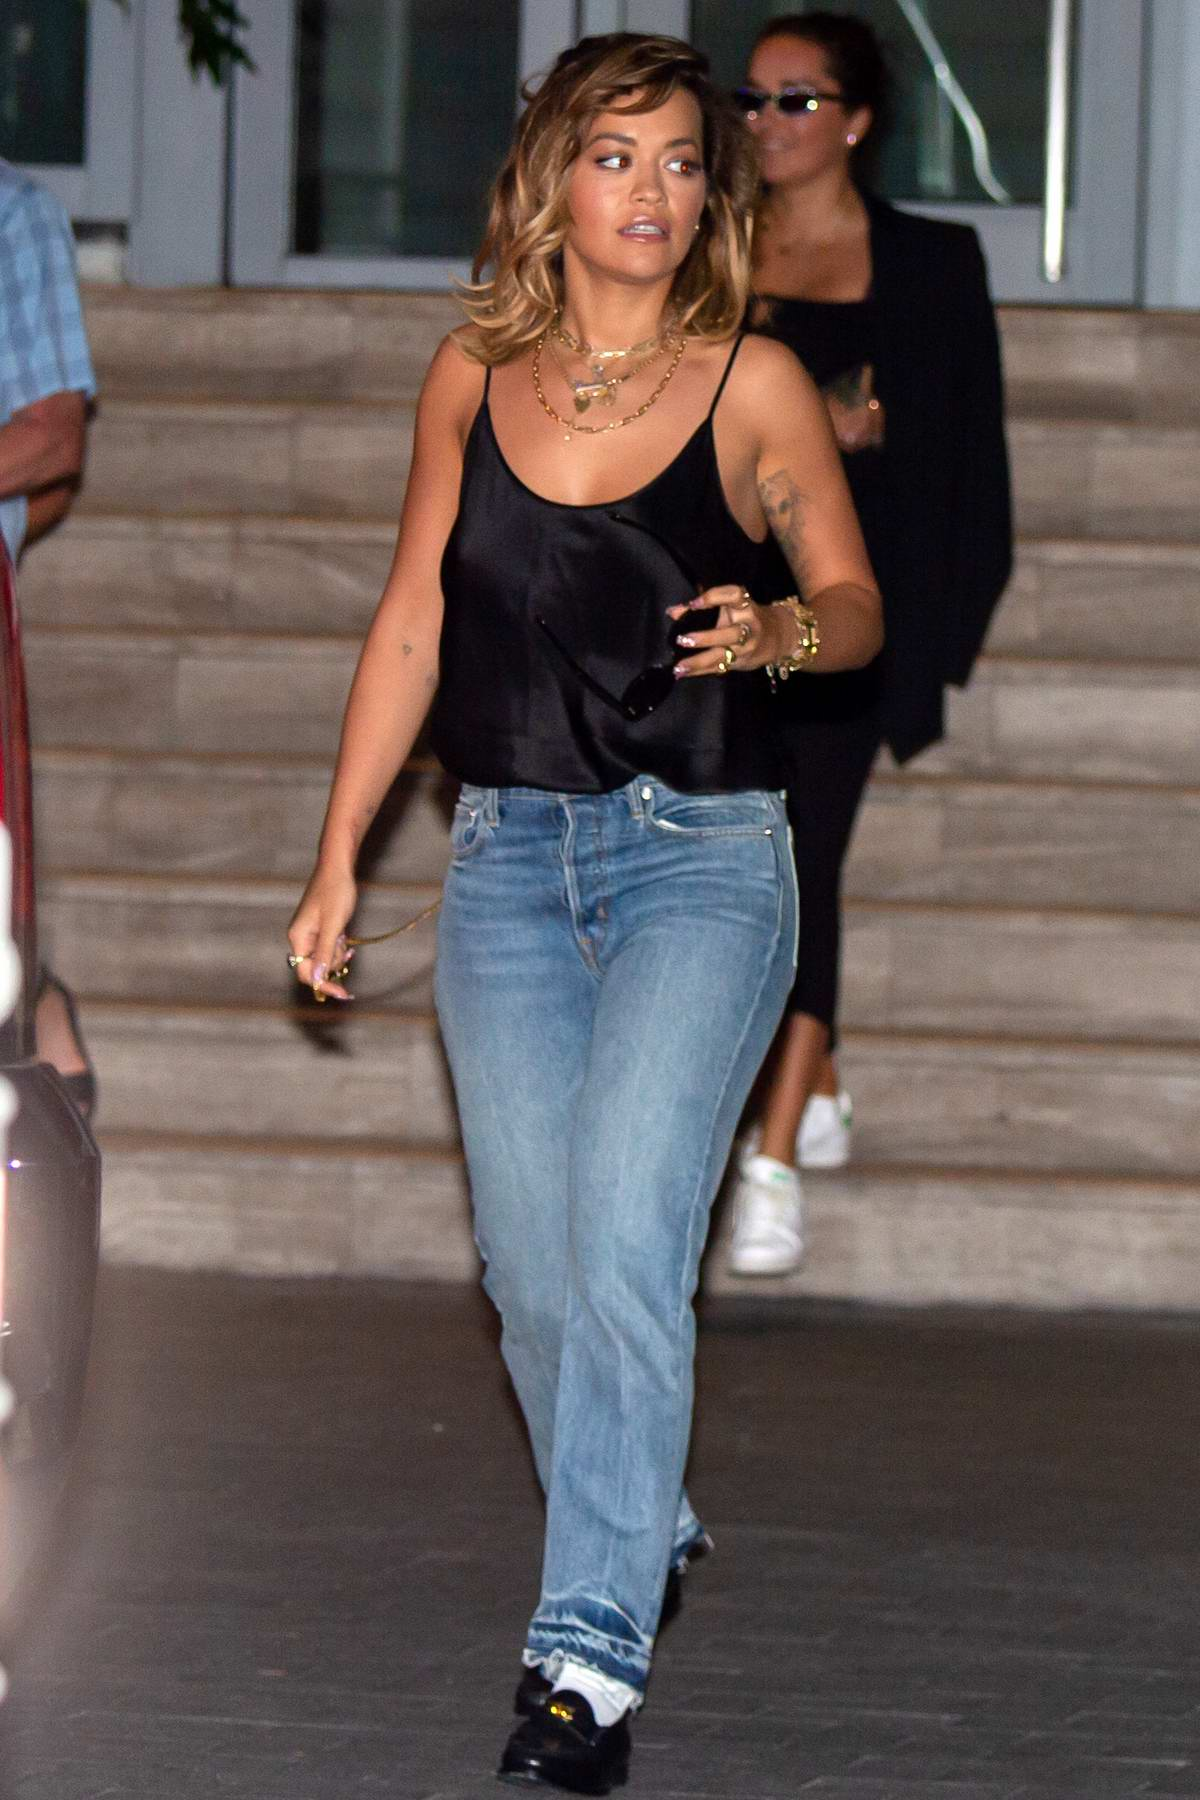 Rita Ora wears a black satin camisole as she leaves her hotel in Miami Beach, Florida